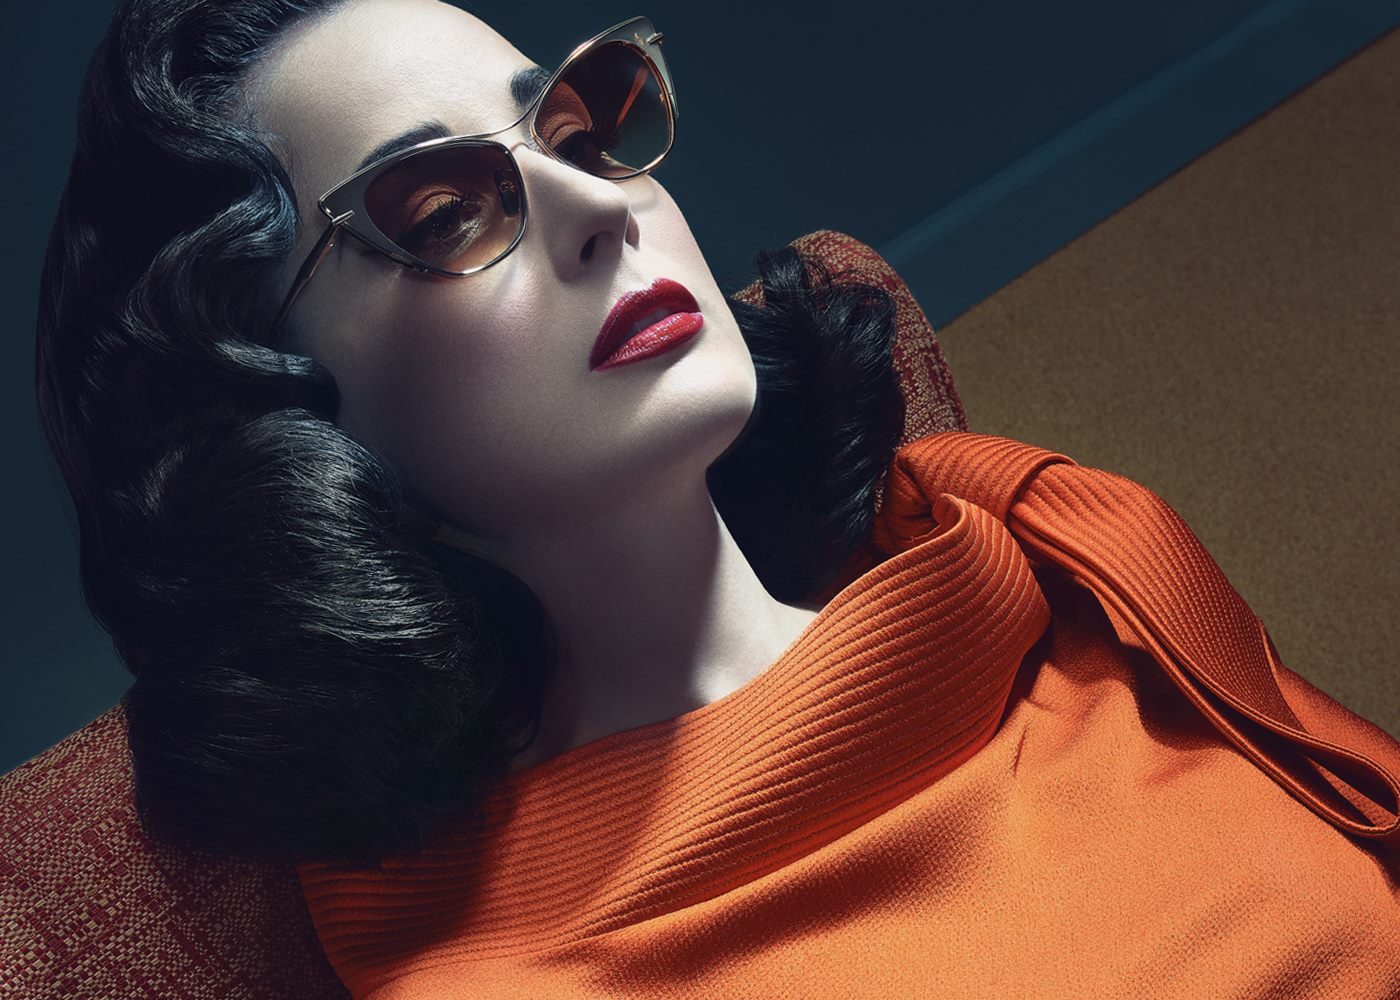 SEEING DOUBLE IN DITA EYEWEAR FOR DITA VON TEESE